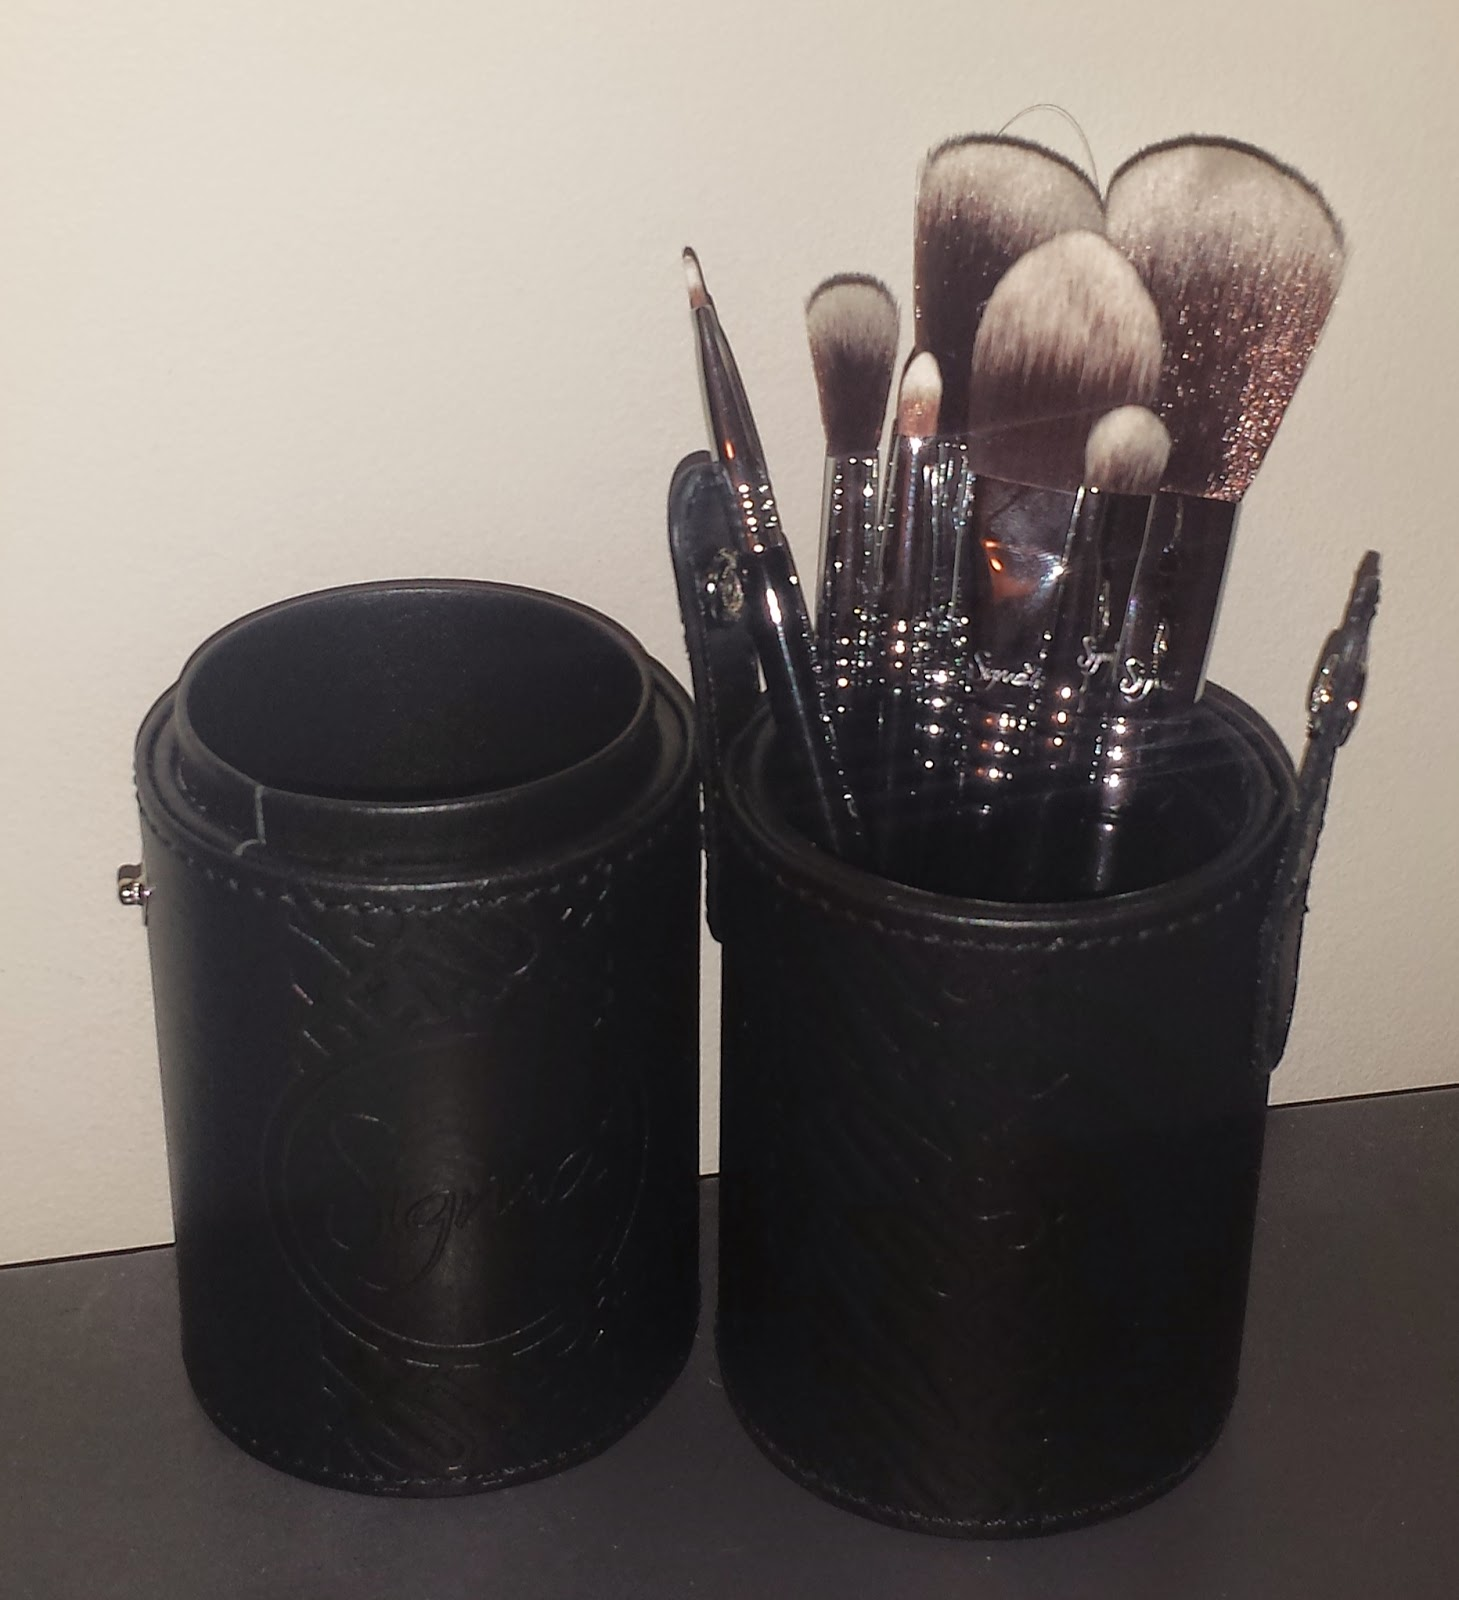 Review: Sigma Mr. Bunny Travel Brush Set